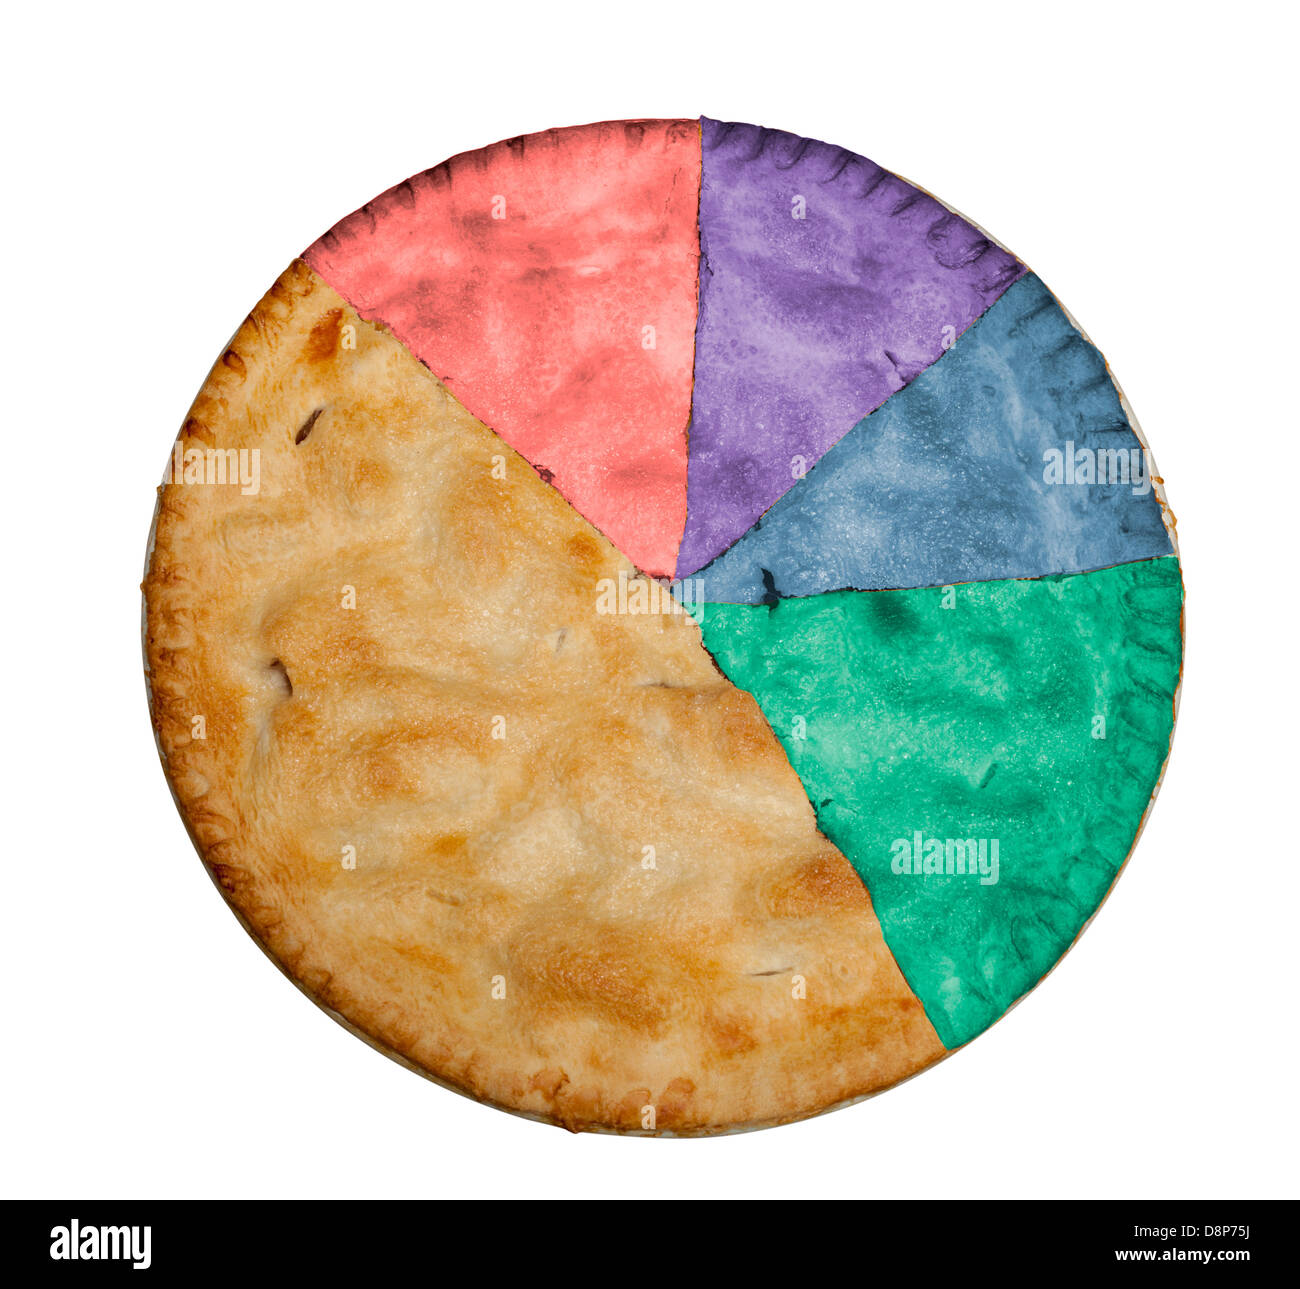 Apple pie cut into slices and marked with colors to indicate a pie chart or statistical model of data - Stock Image